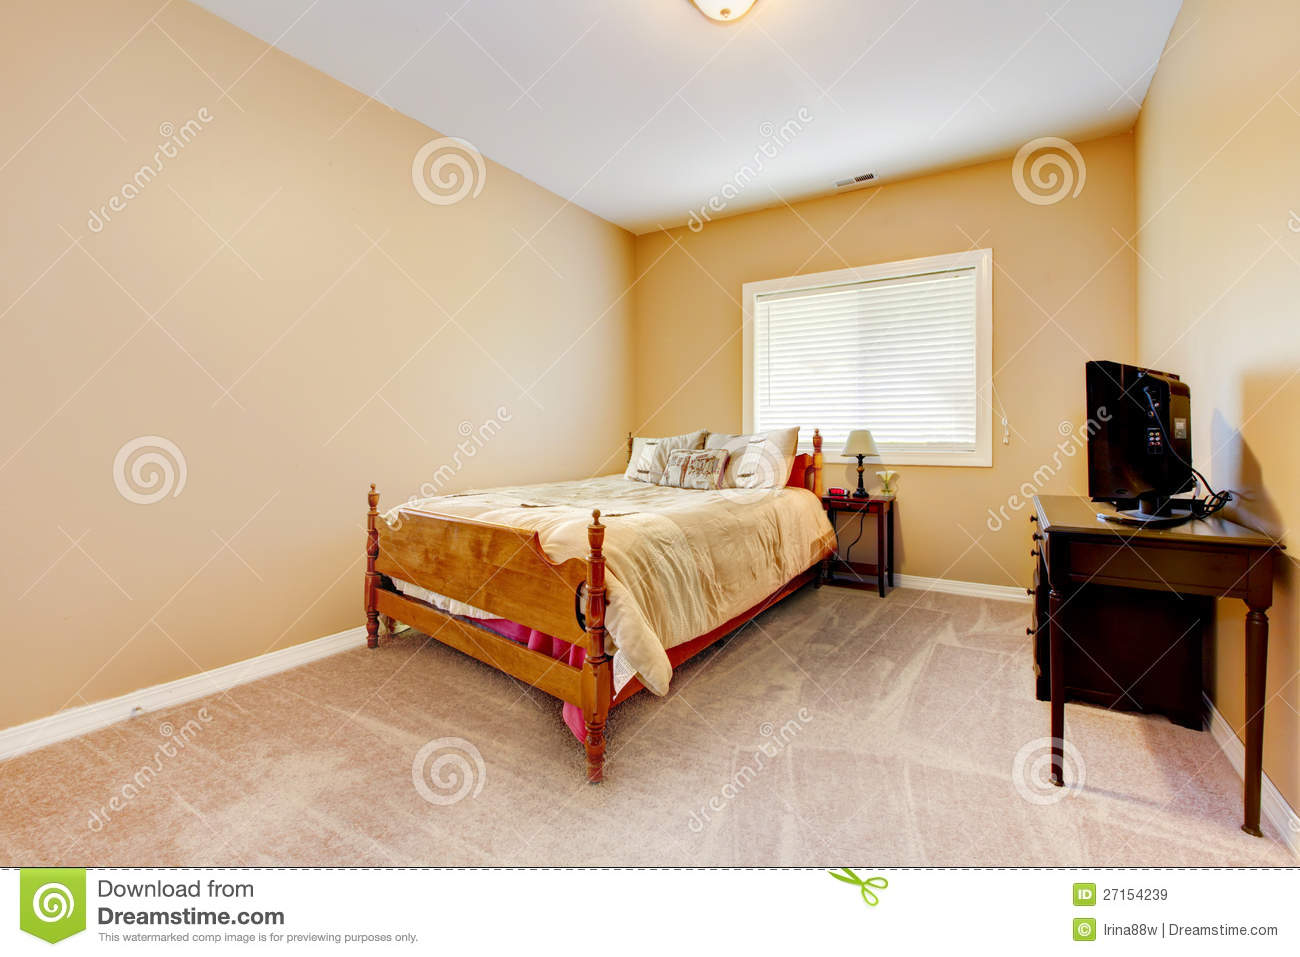 bedroom with yellow walls stock images - image: 15990294